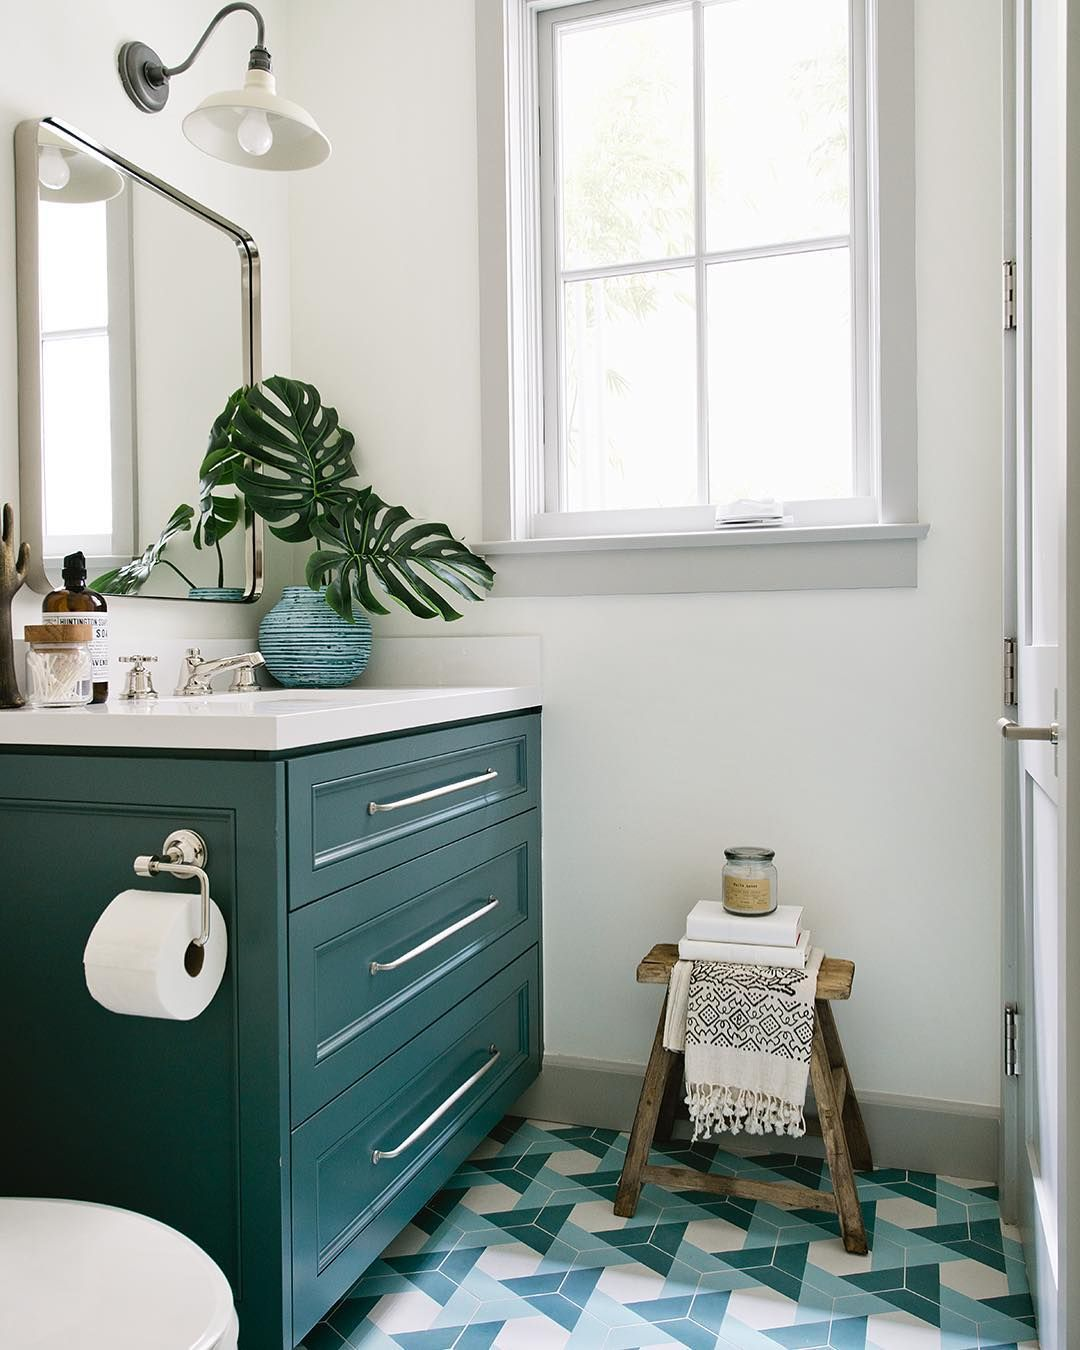 Bold Teal Bathroom With Teal Green Vanity And Matching Geometric Tile Colorful Home Decor Inspiration Teal Bathroom Decor House Bathroom Designs Teal Bathroom